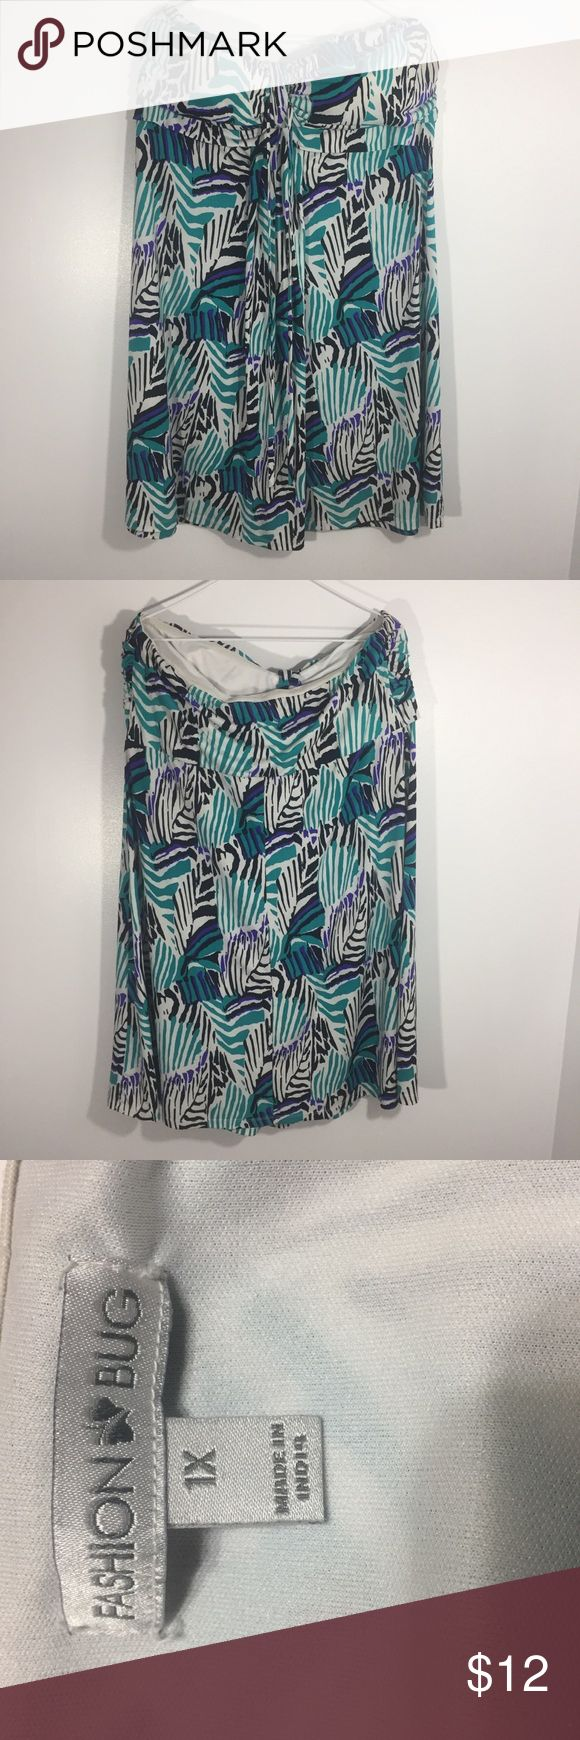 """Casual strapless Summer Dress Fashion Bug Blue Black and White Casual Strapless Summer Dress. Padded Bust.    Approx Measurement s taken laying flat and unstretched:  Bust: 34"""" Length 30""""  Preowned. No stains or holes. Fashion Bug Dresses Mini"""